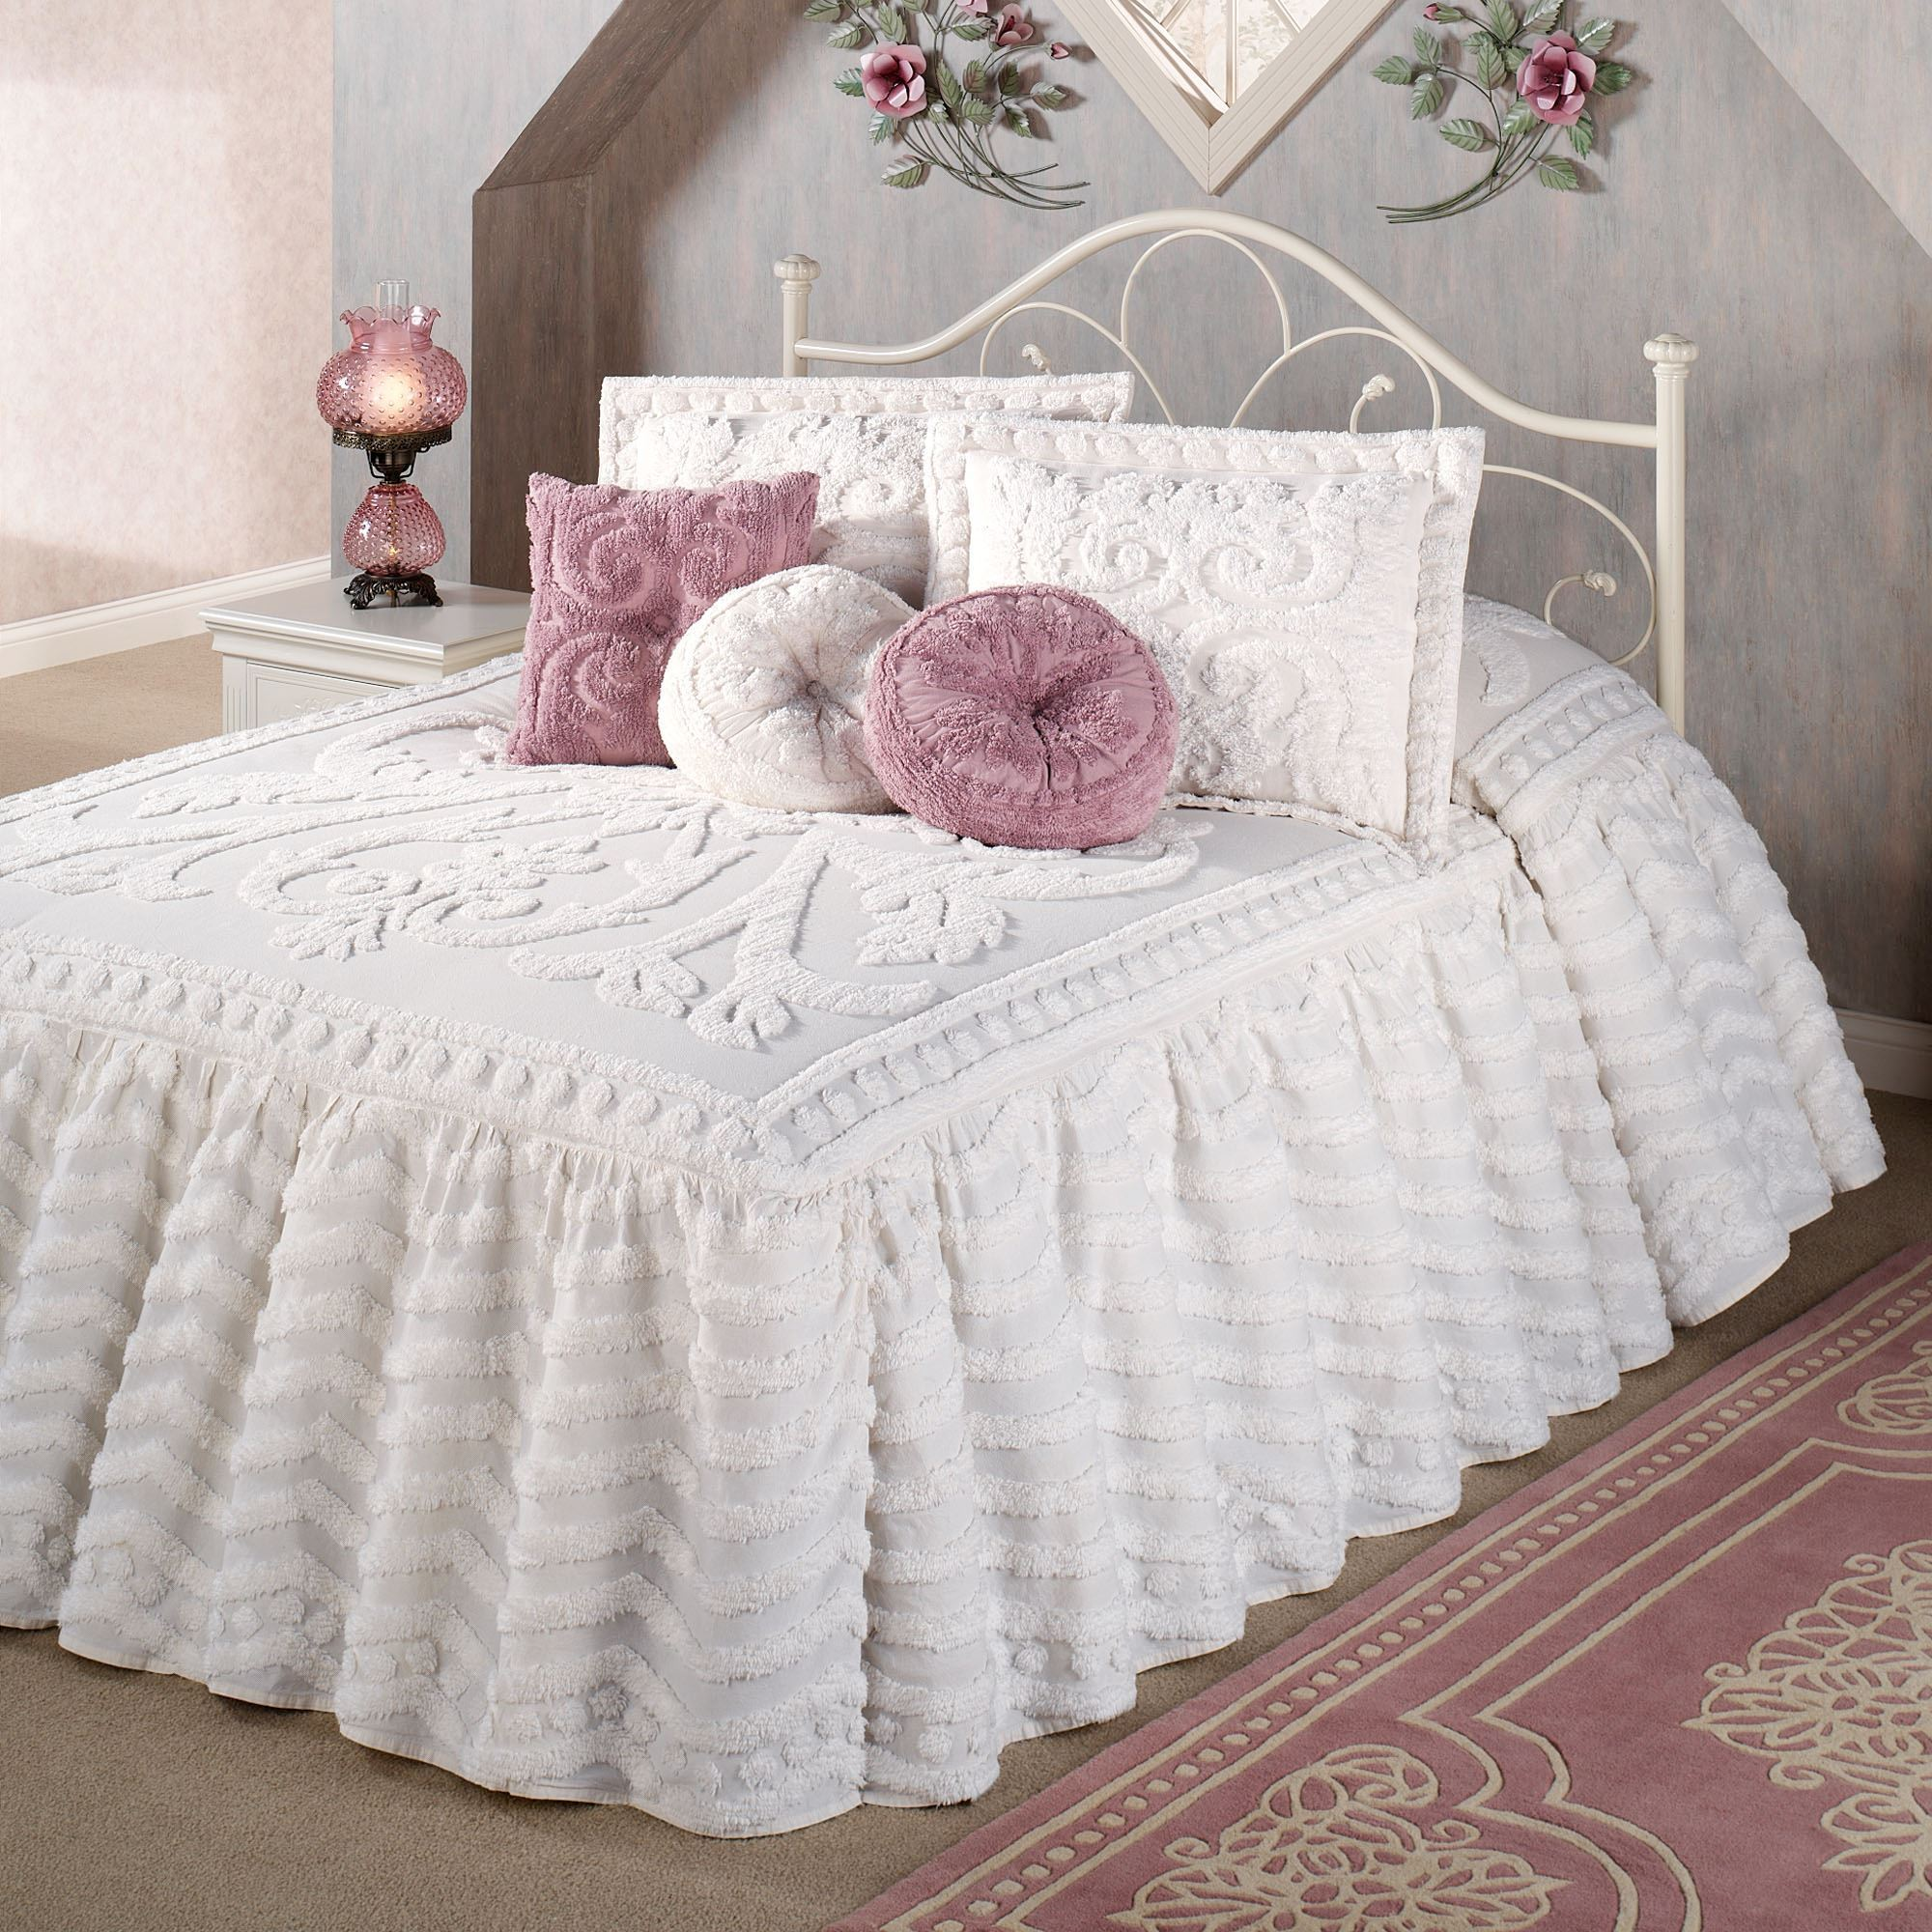 bath reviews alternative white bed ruffle comforter wayfair pdx down basics